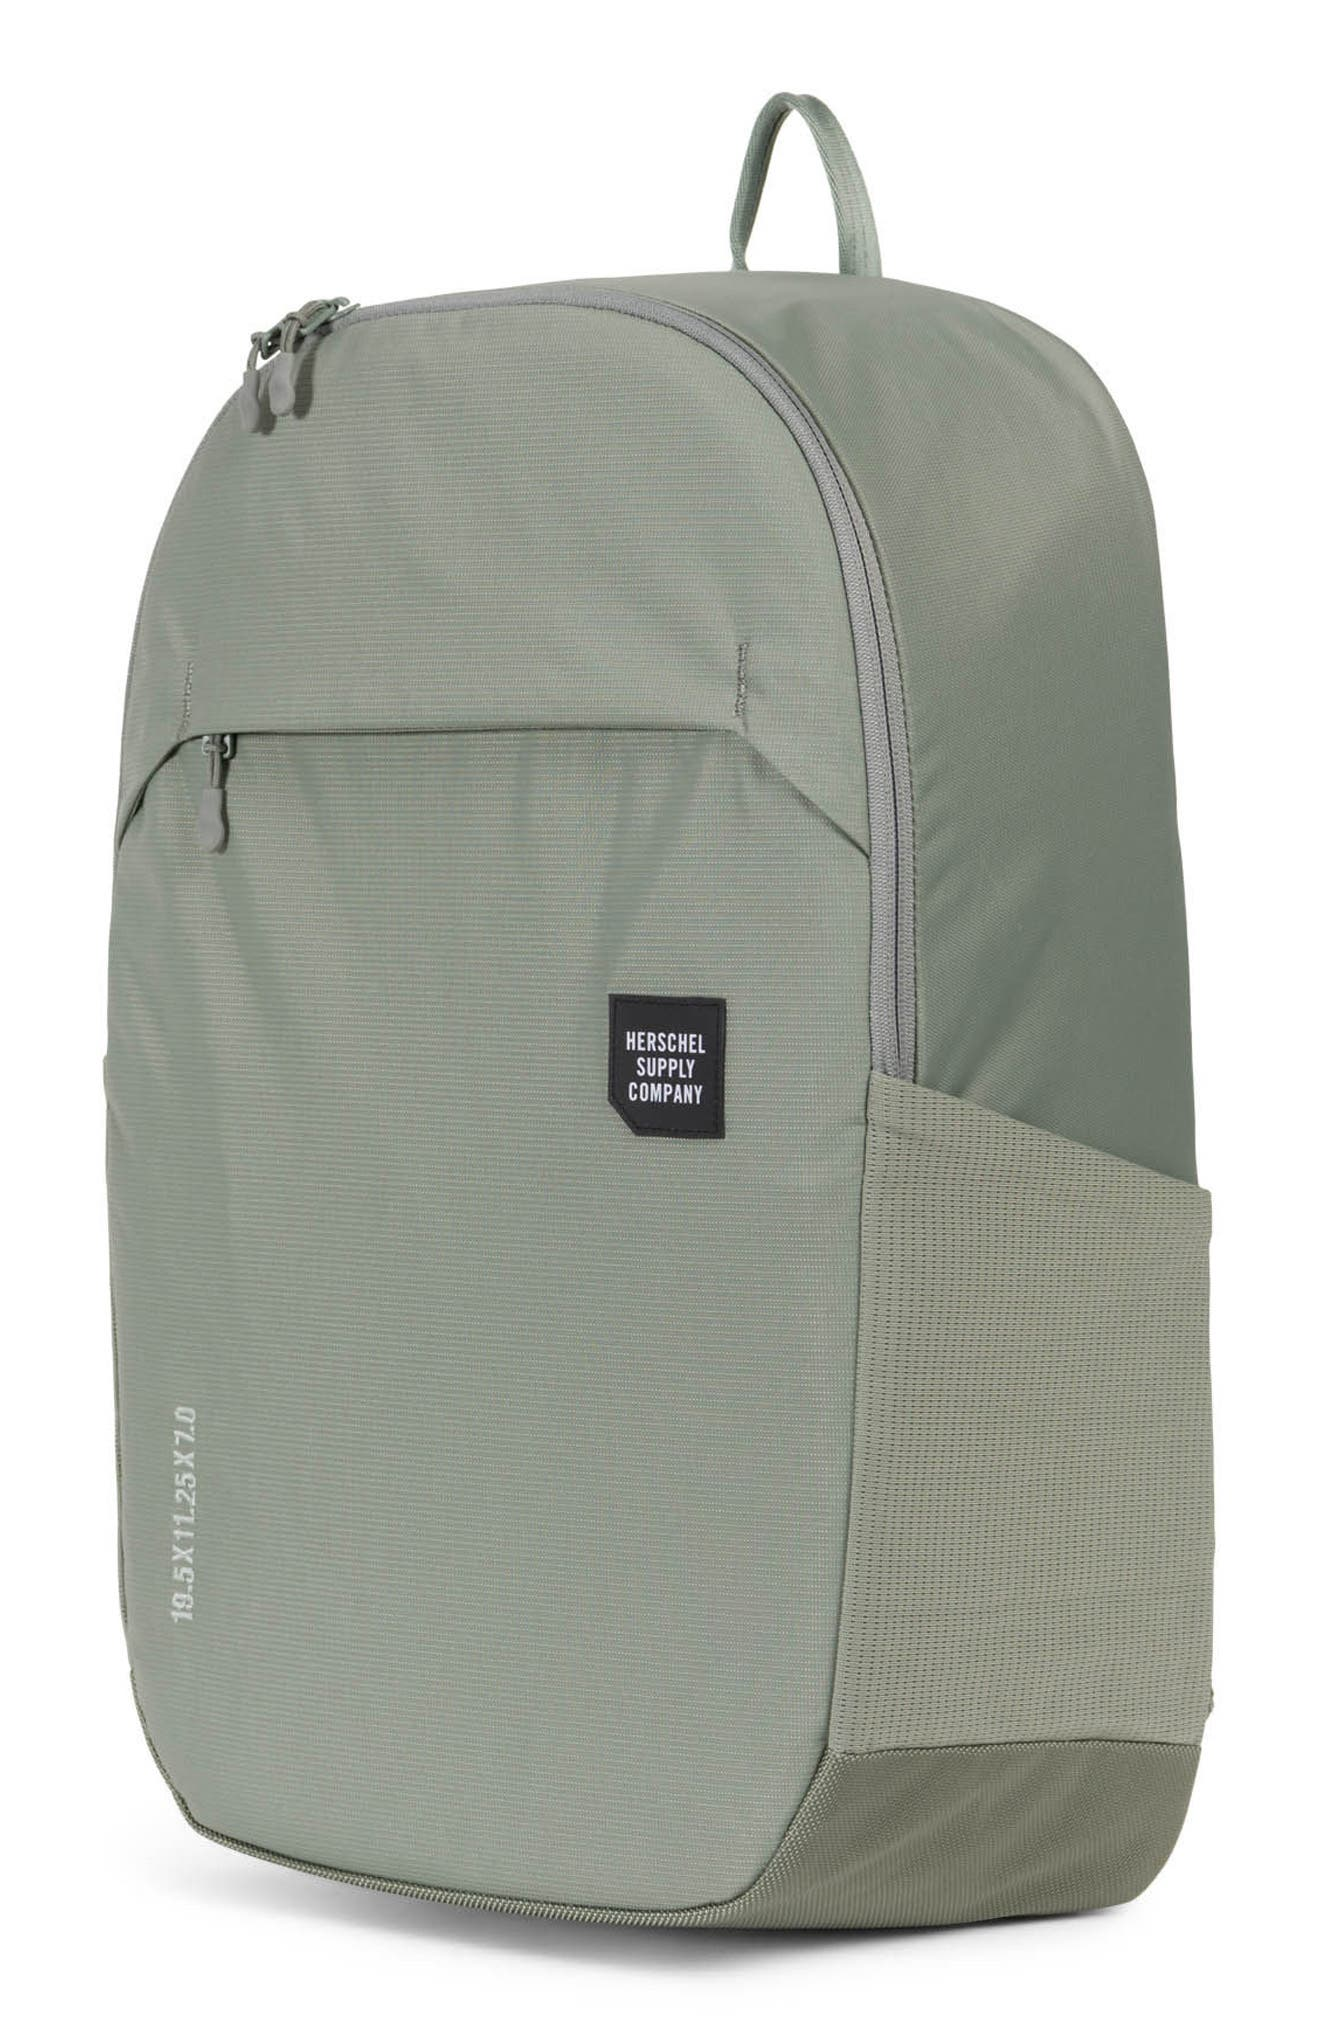 Mammoth Trail Backpack,                             Main thumbnail 1, color,                             037